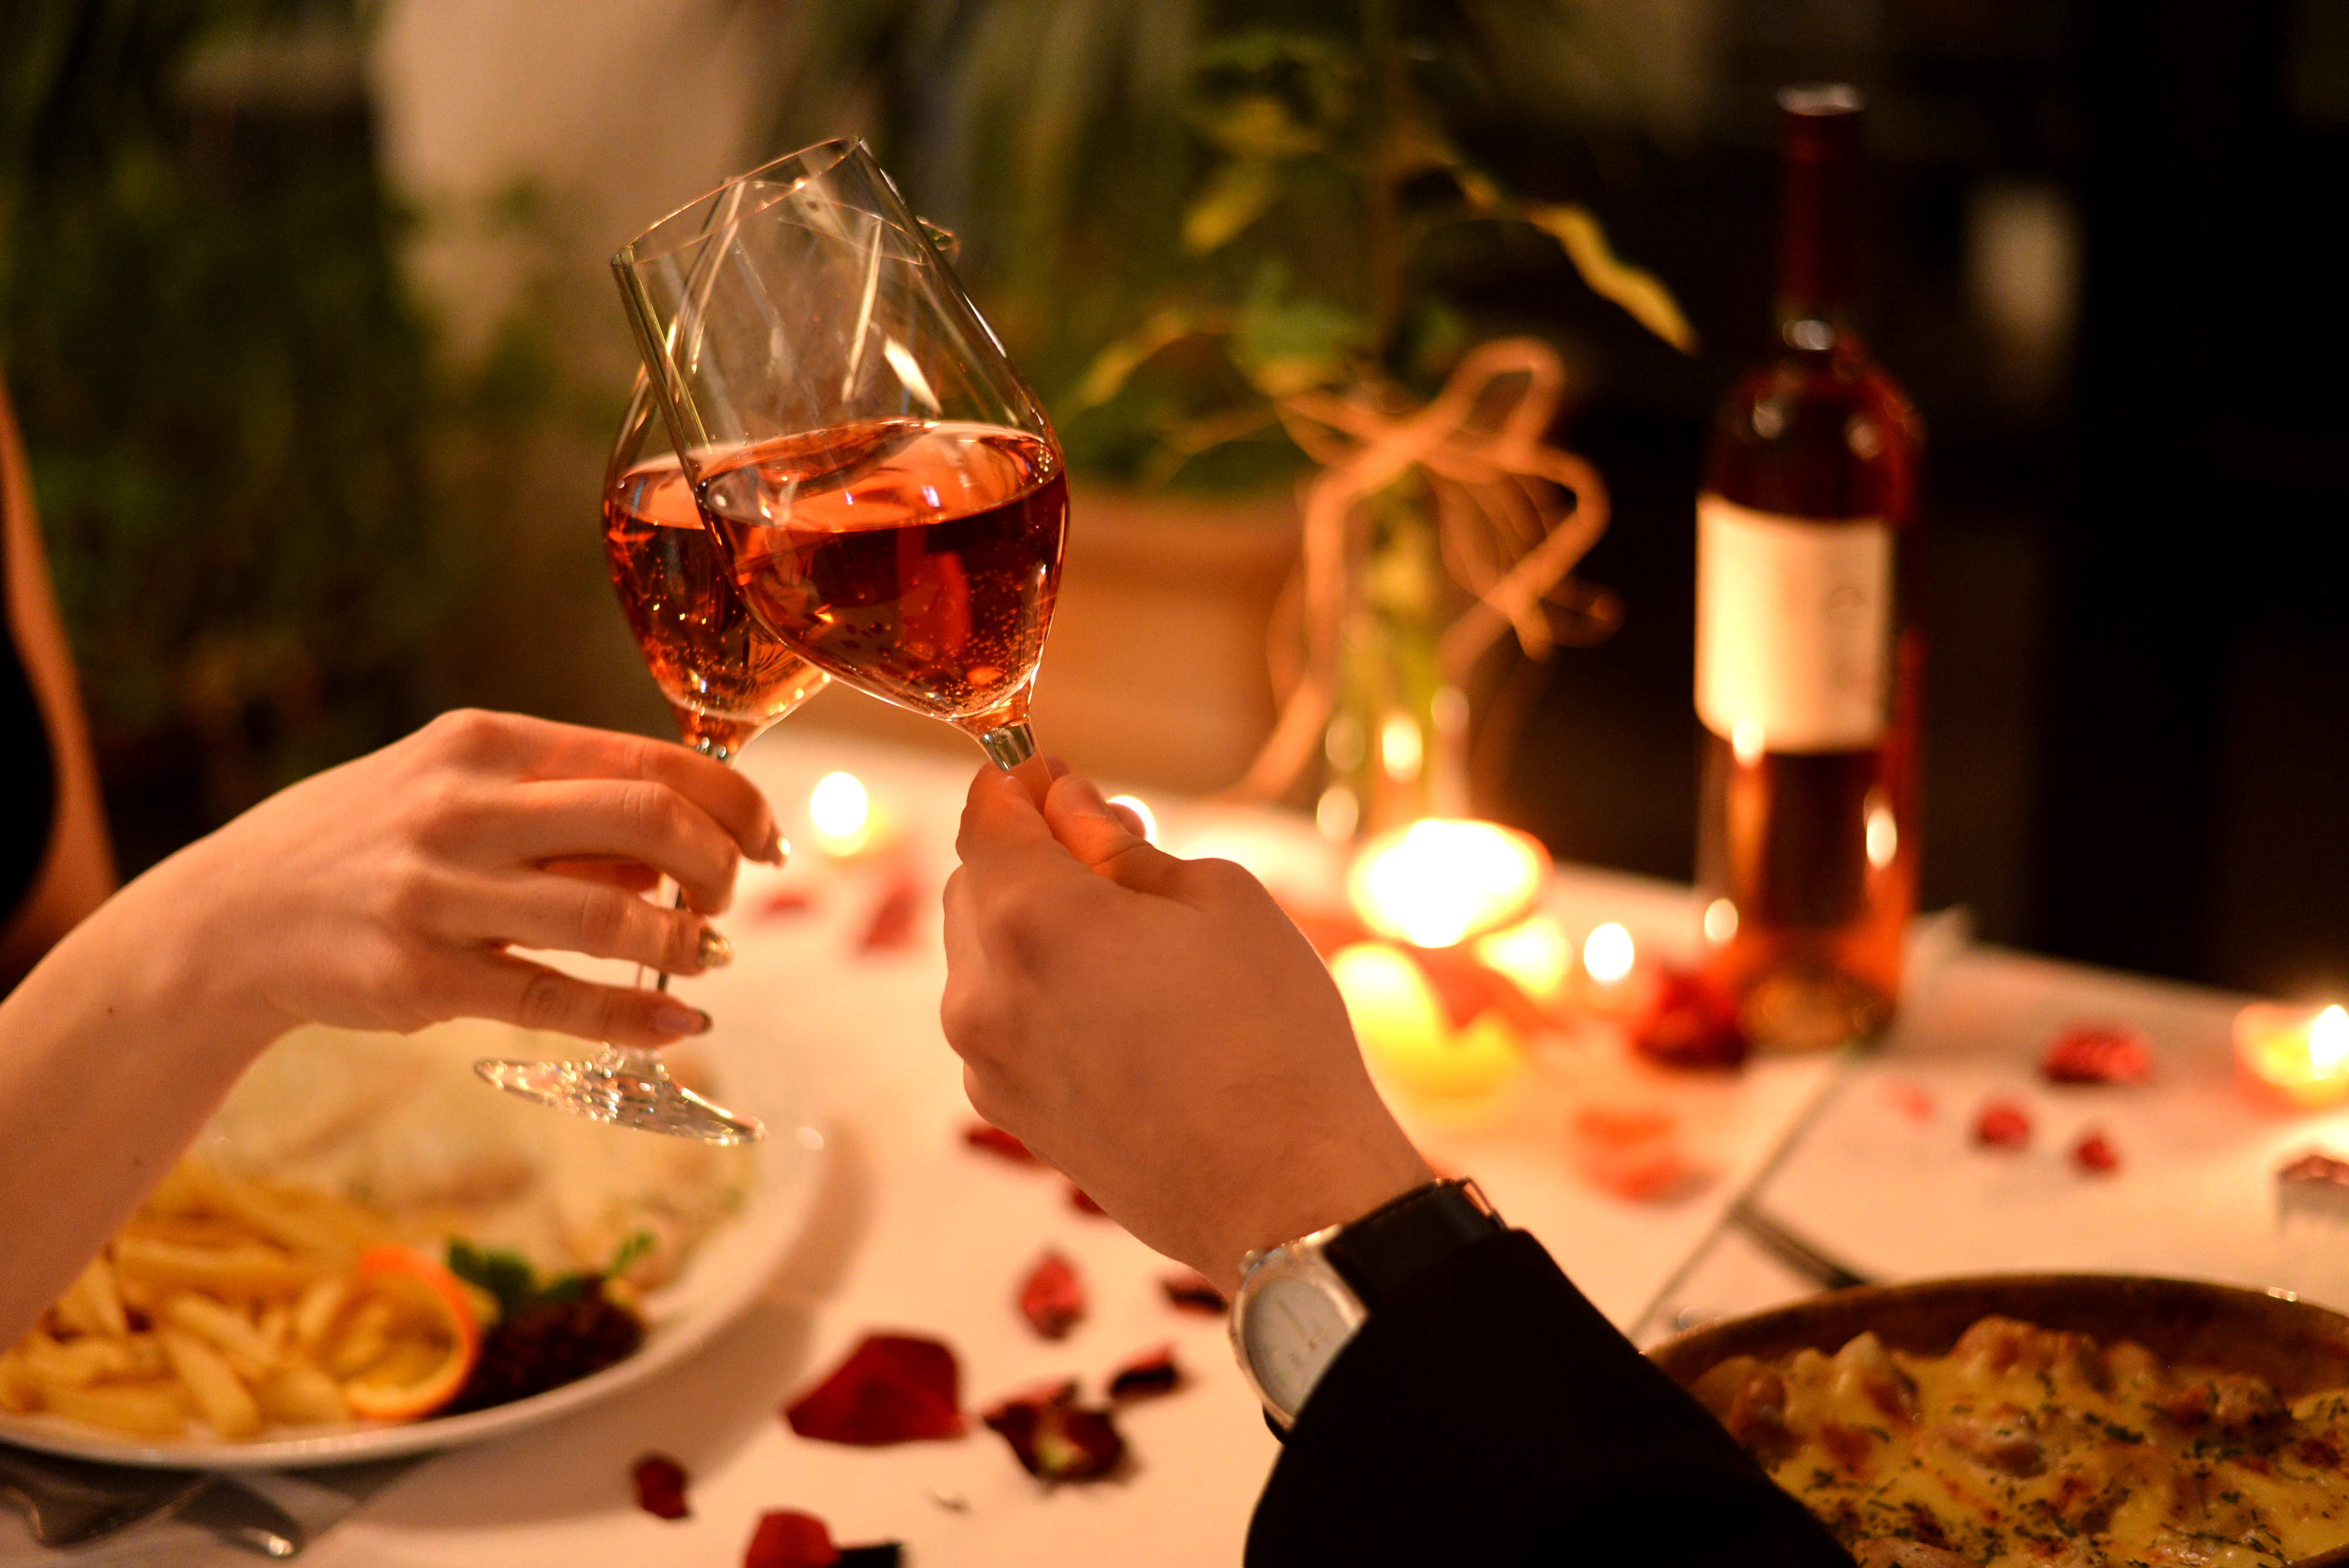 Two hands reach in from the sides of the photo, clinking champagne glasses over a candelit dinner table with rose petals scattered on it